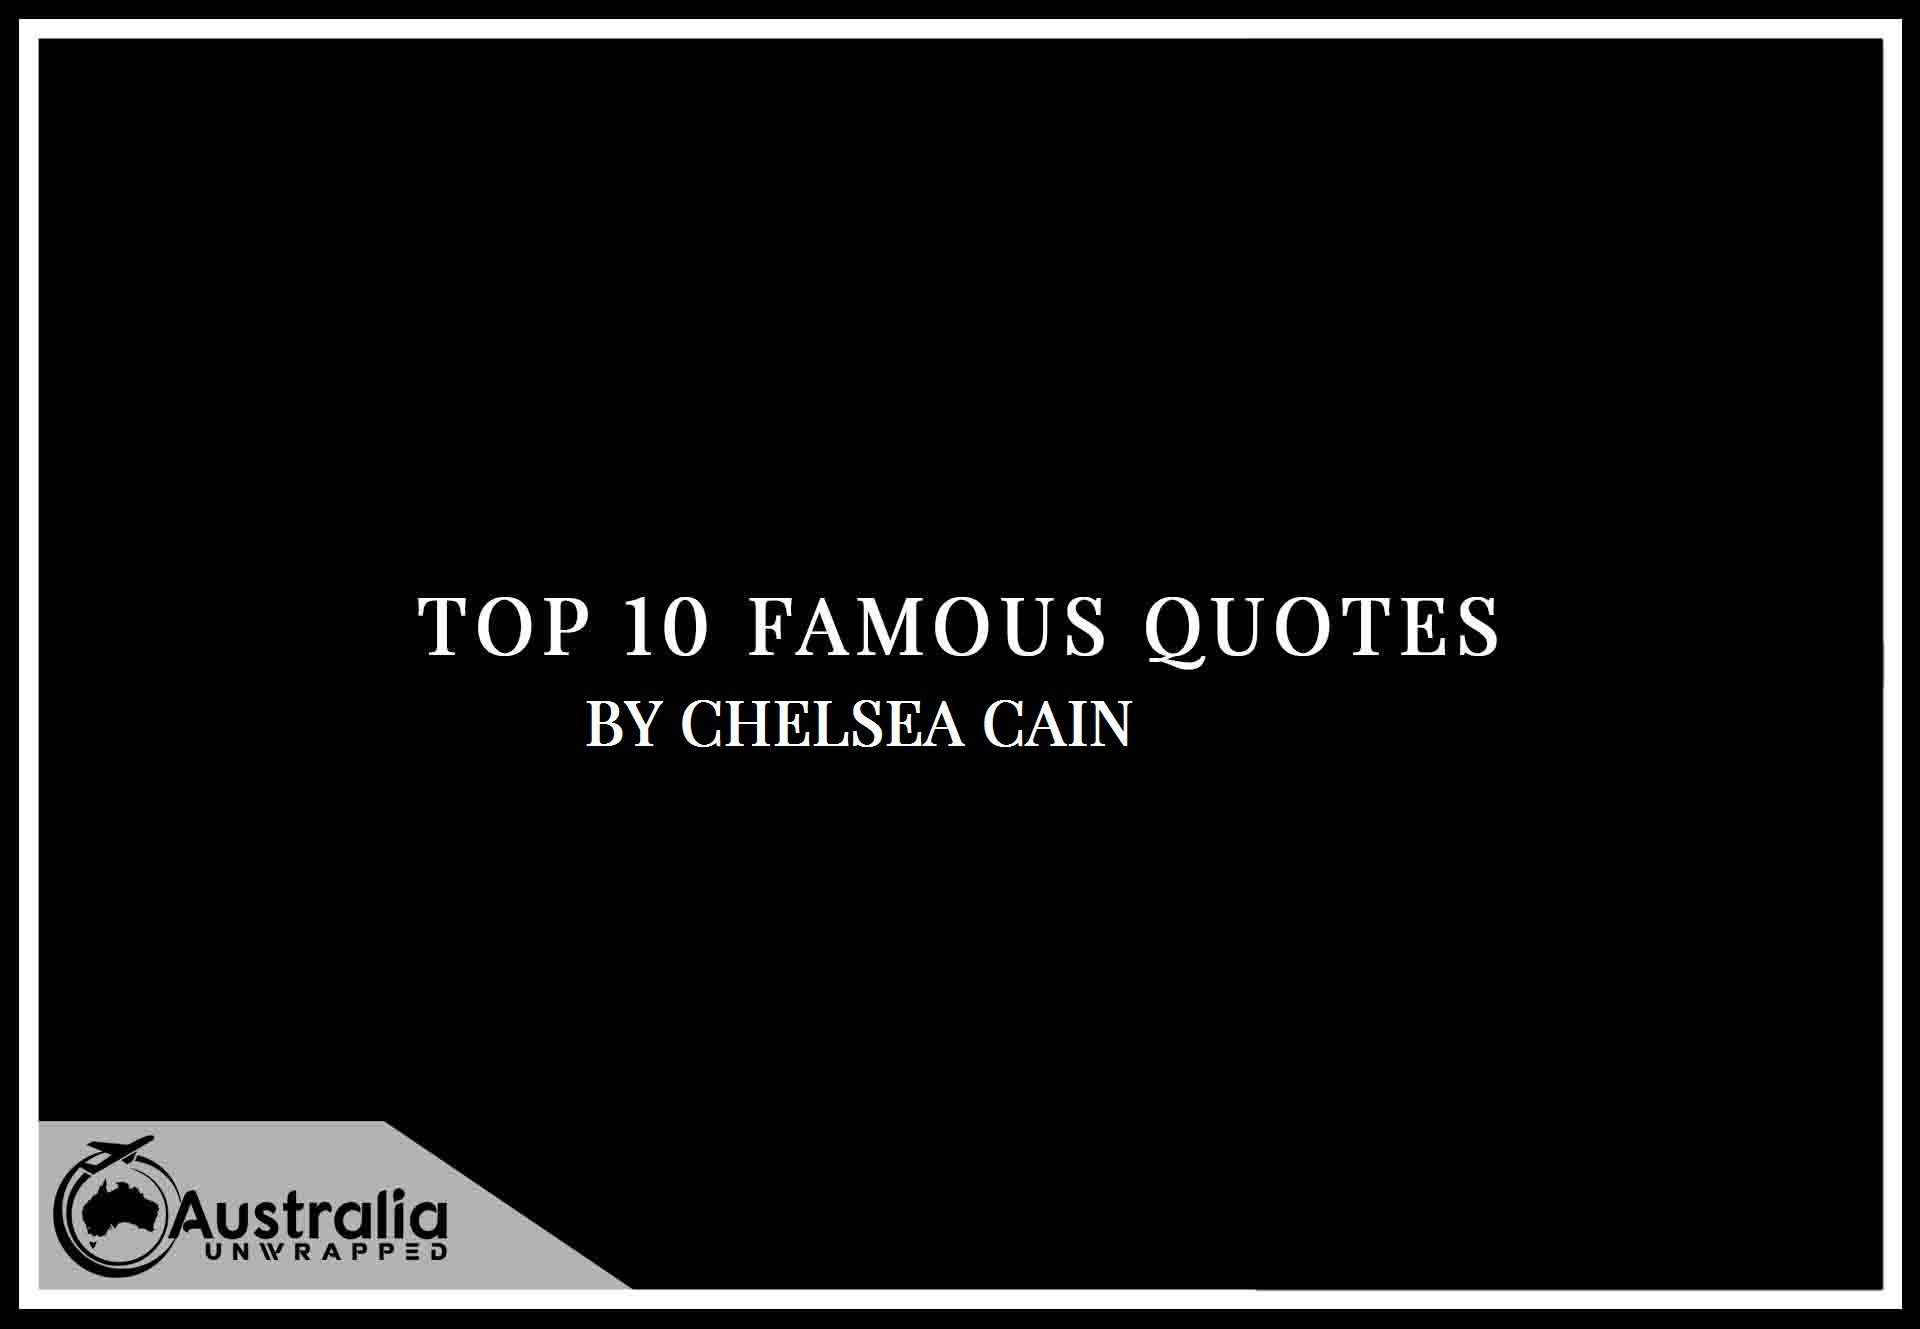 Chelsea Cain's Top 10 Popular and Famous Quotes